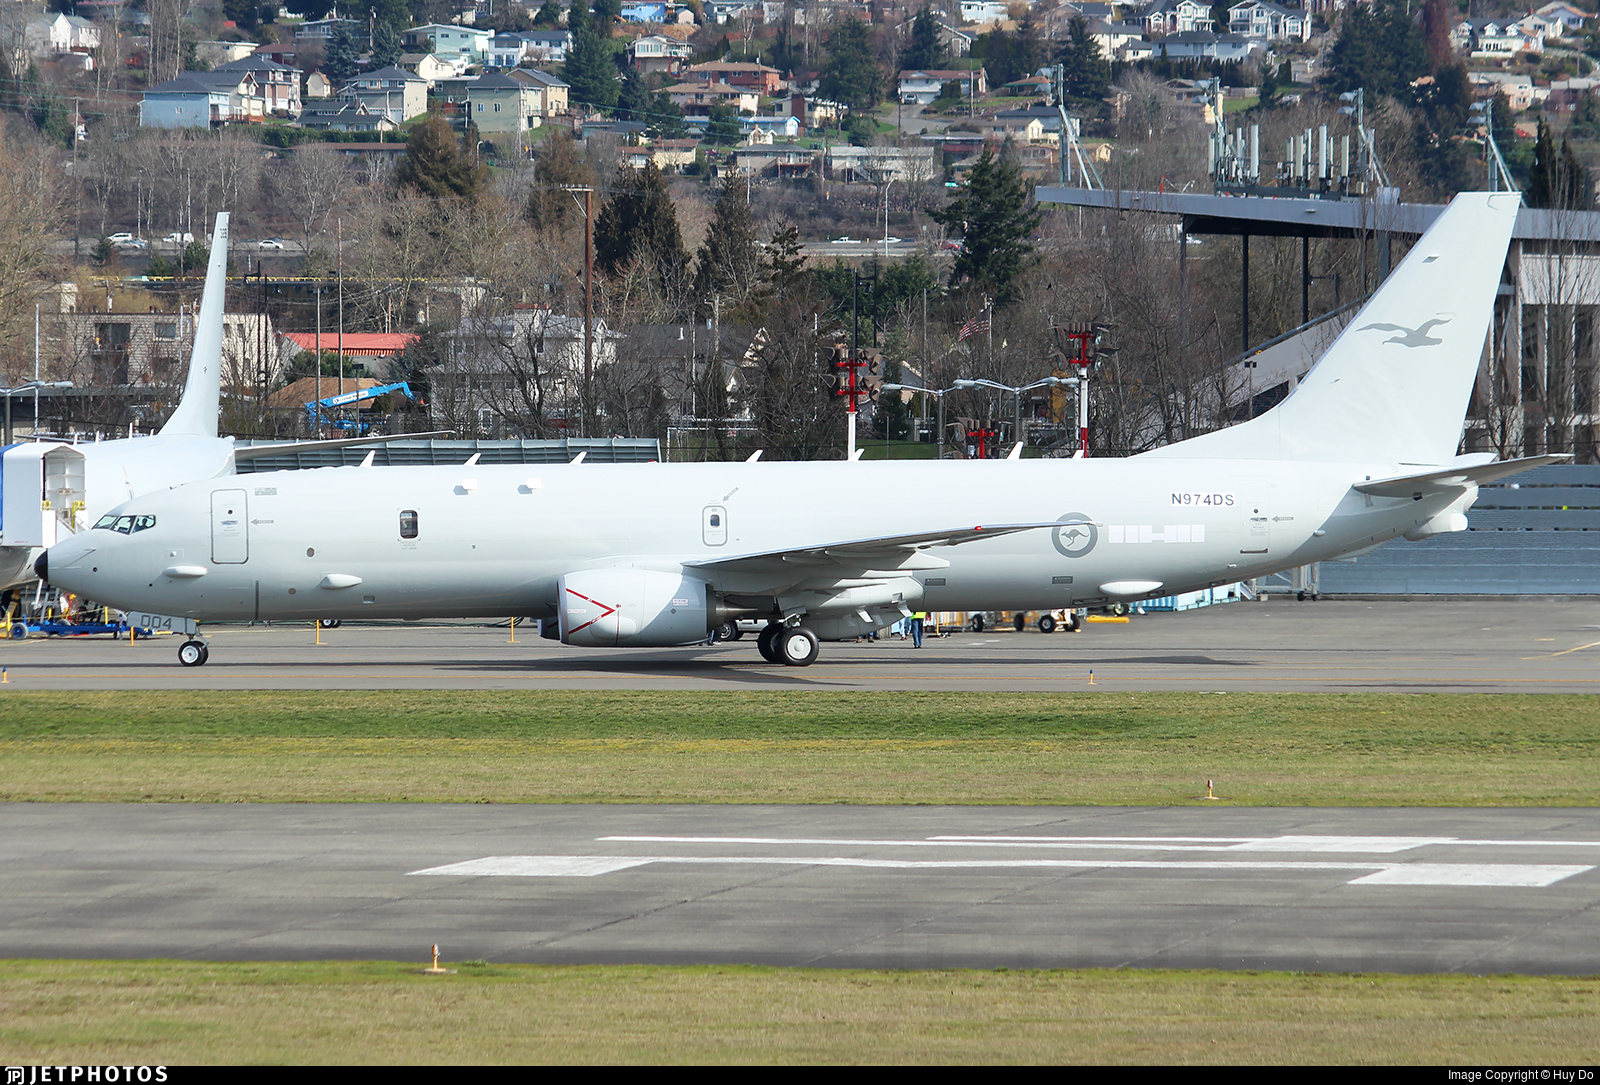 N974DS - Boeing P-8A Poseidon - Australia - Royal Australian Air Force (RAAF)